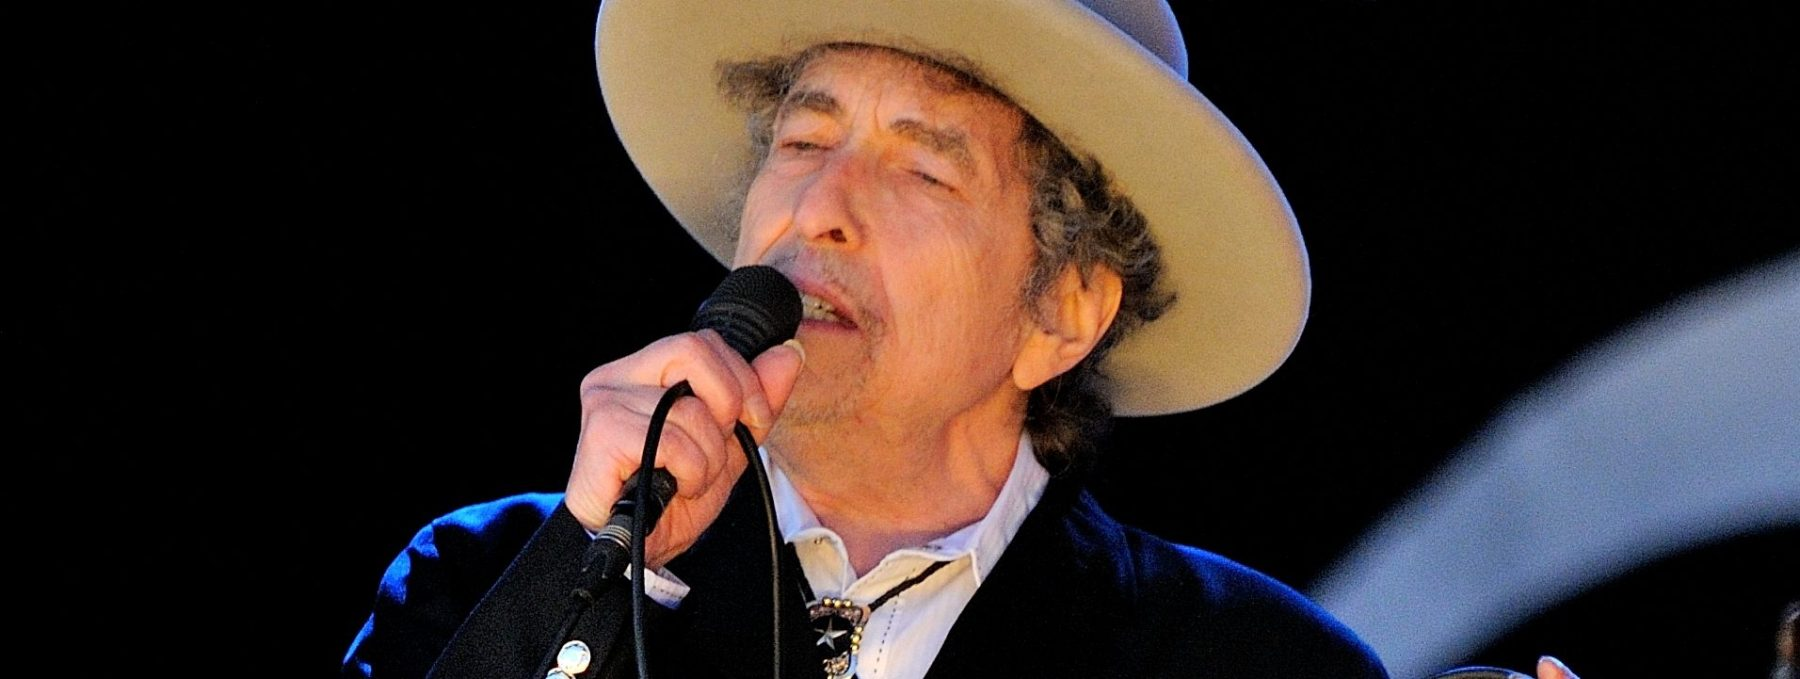 Bob Dylan performs on stage during Hop Farm Festival at Hop Farm Family Park on June 30, 2012 in Paddock Wood, United Kingdom. (Photo by Gus Stewart/Redferns via Getty Images)